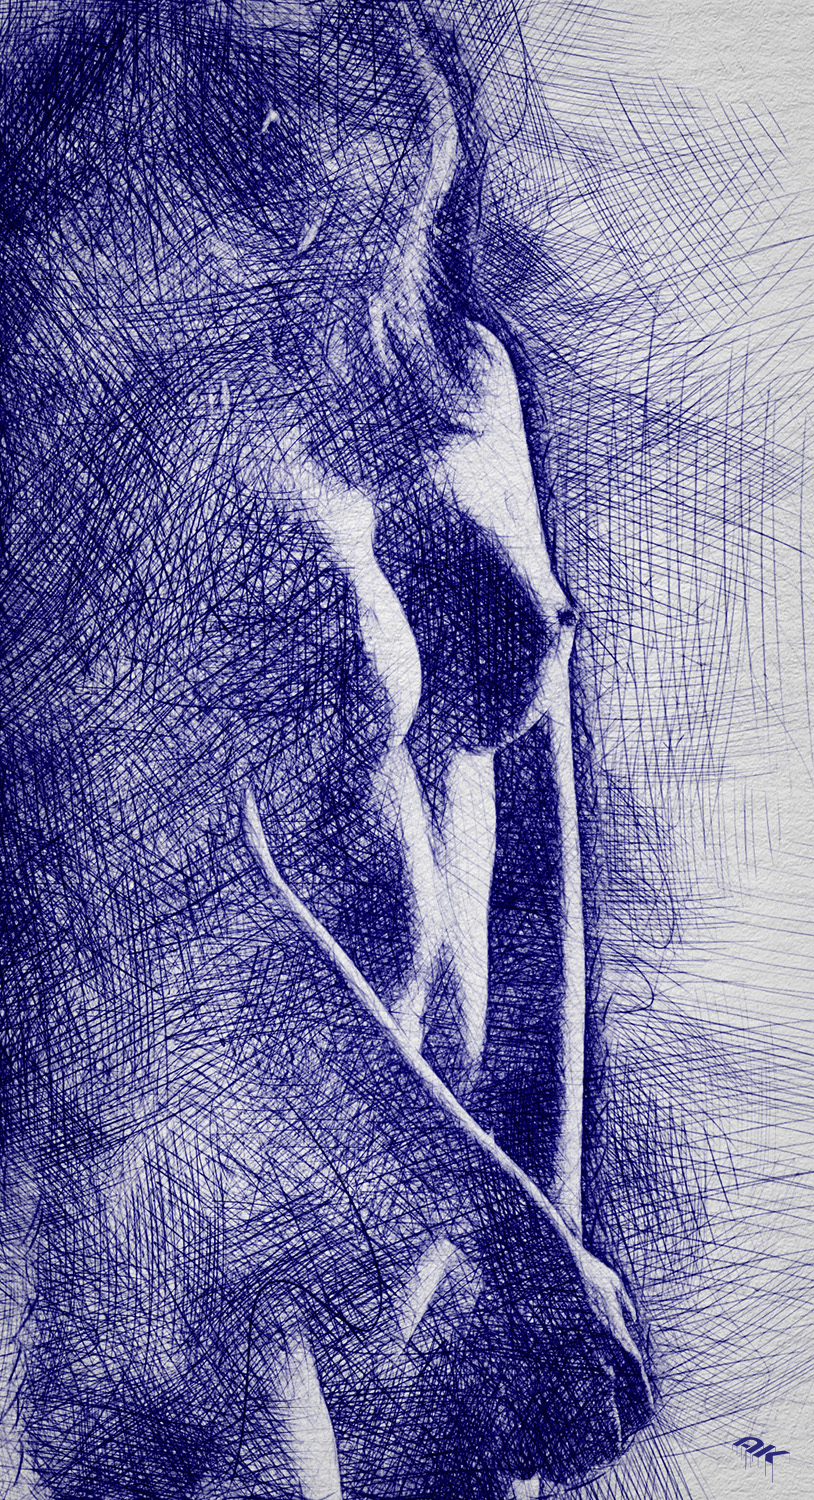 life-drawing-series-5-image-11-copyright-andrew-knutt